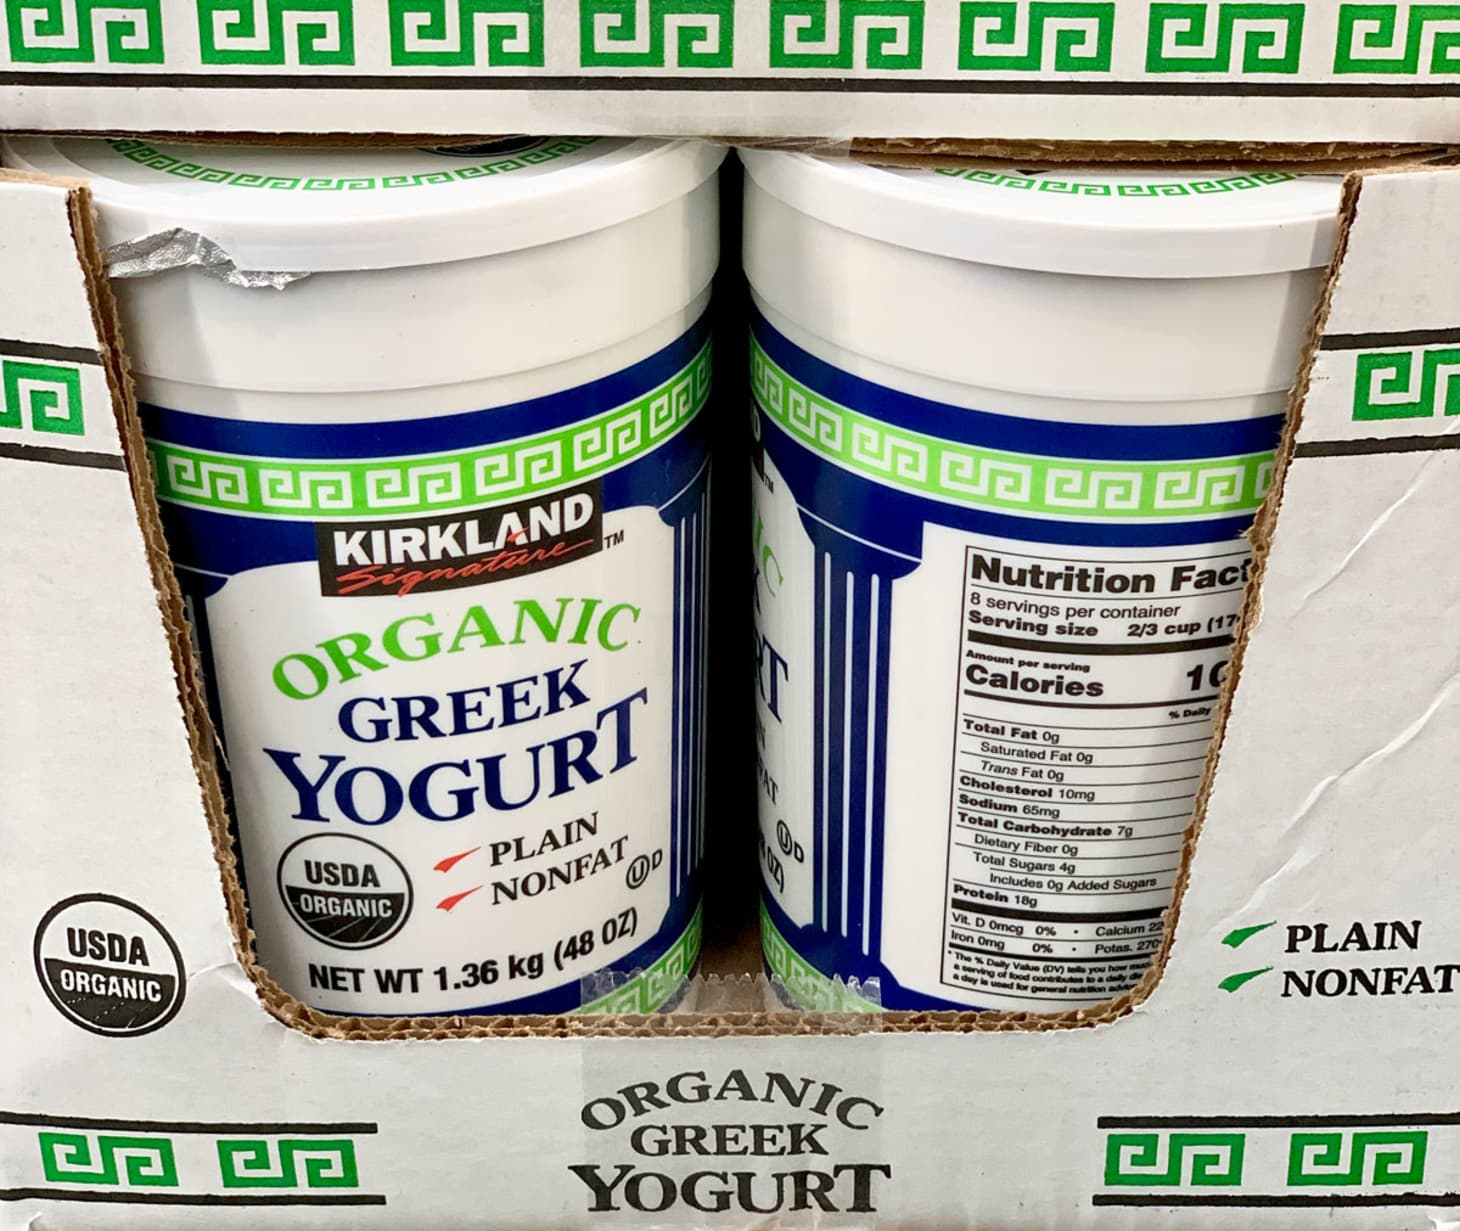 Healthy Costco Kirkland Signature Products | Kitchn